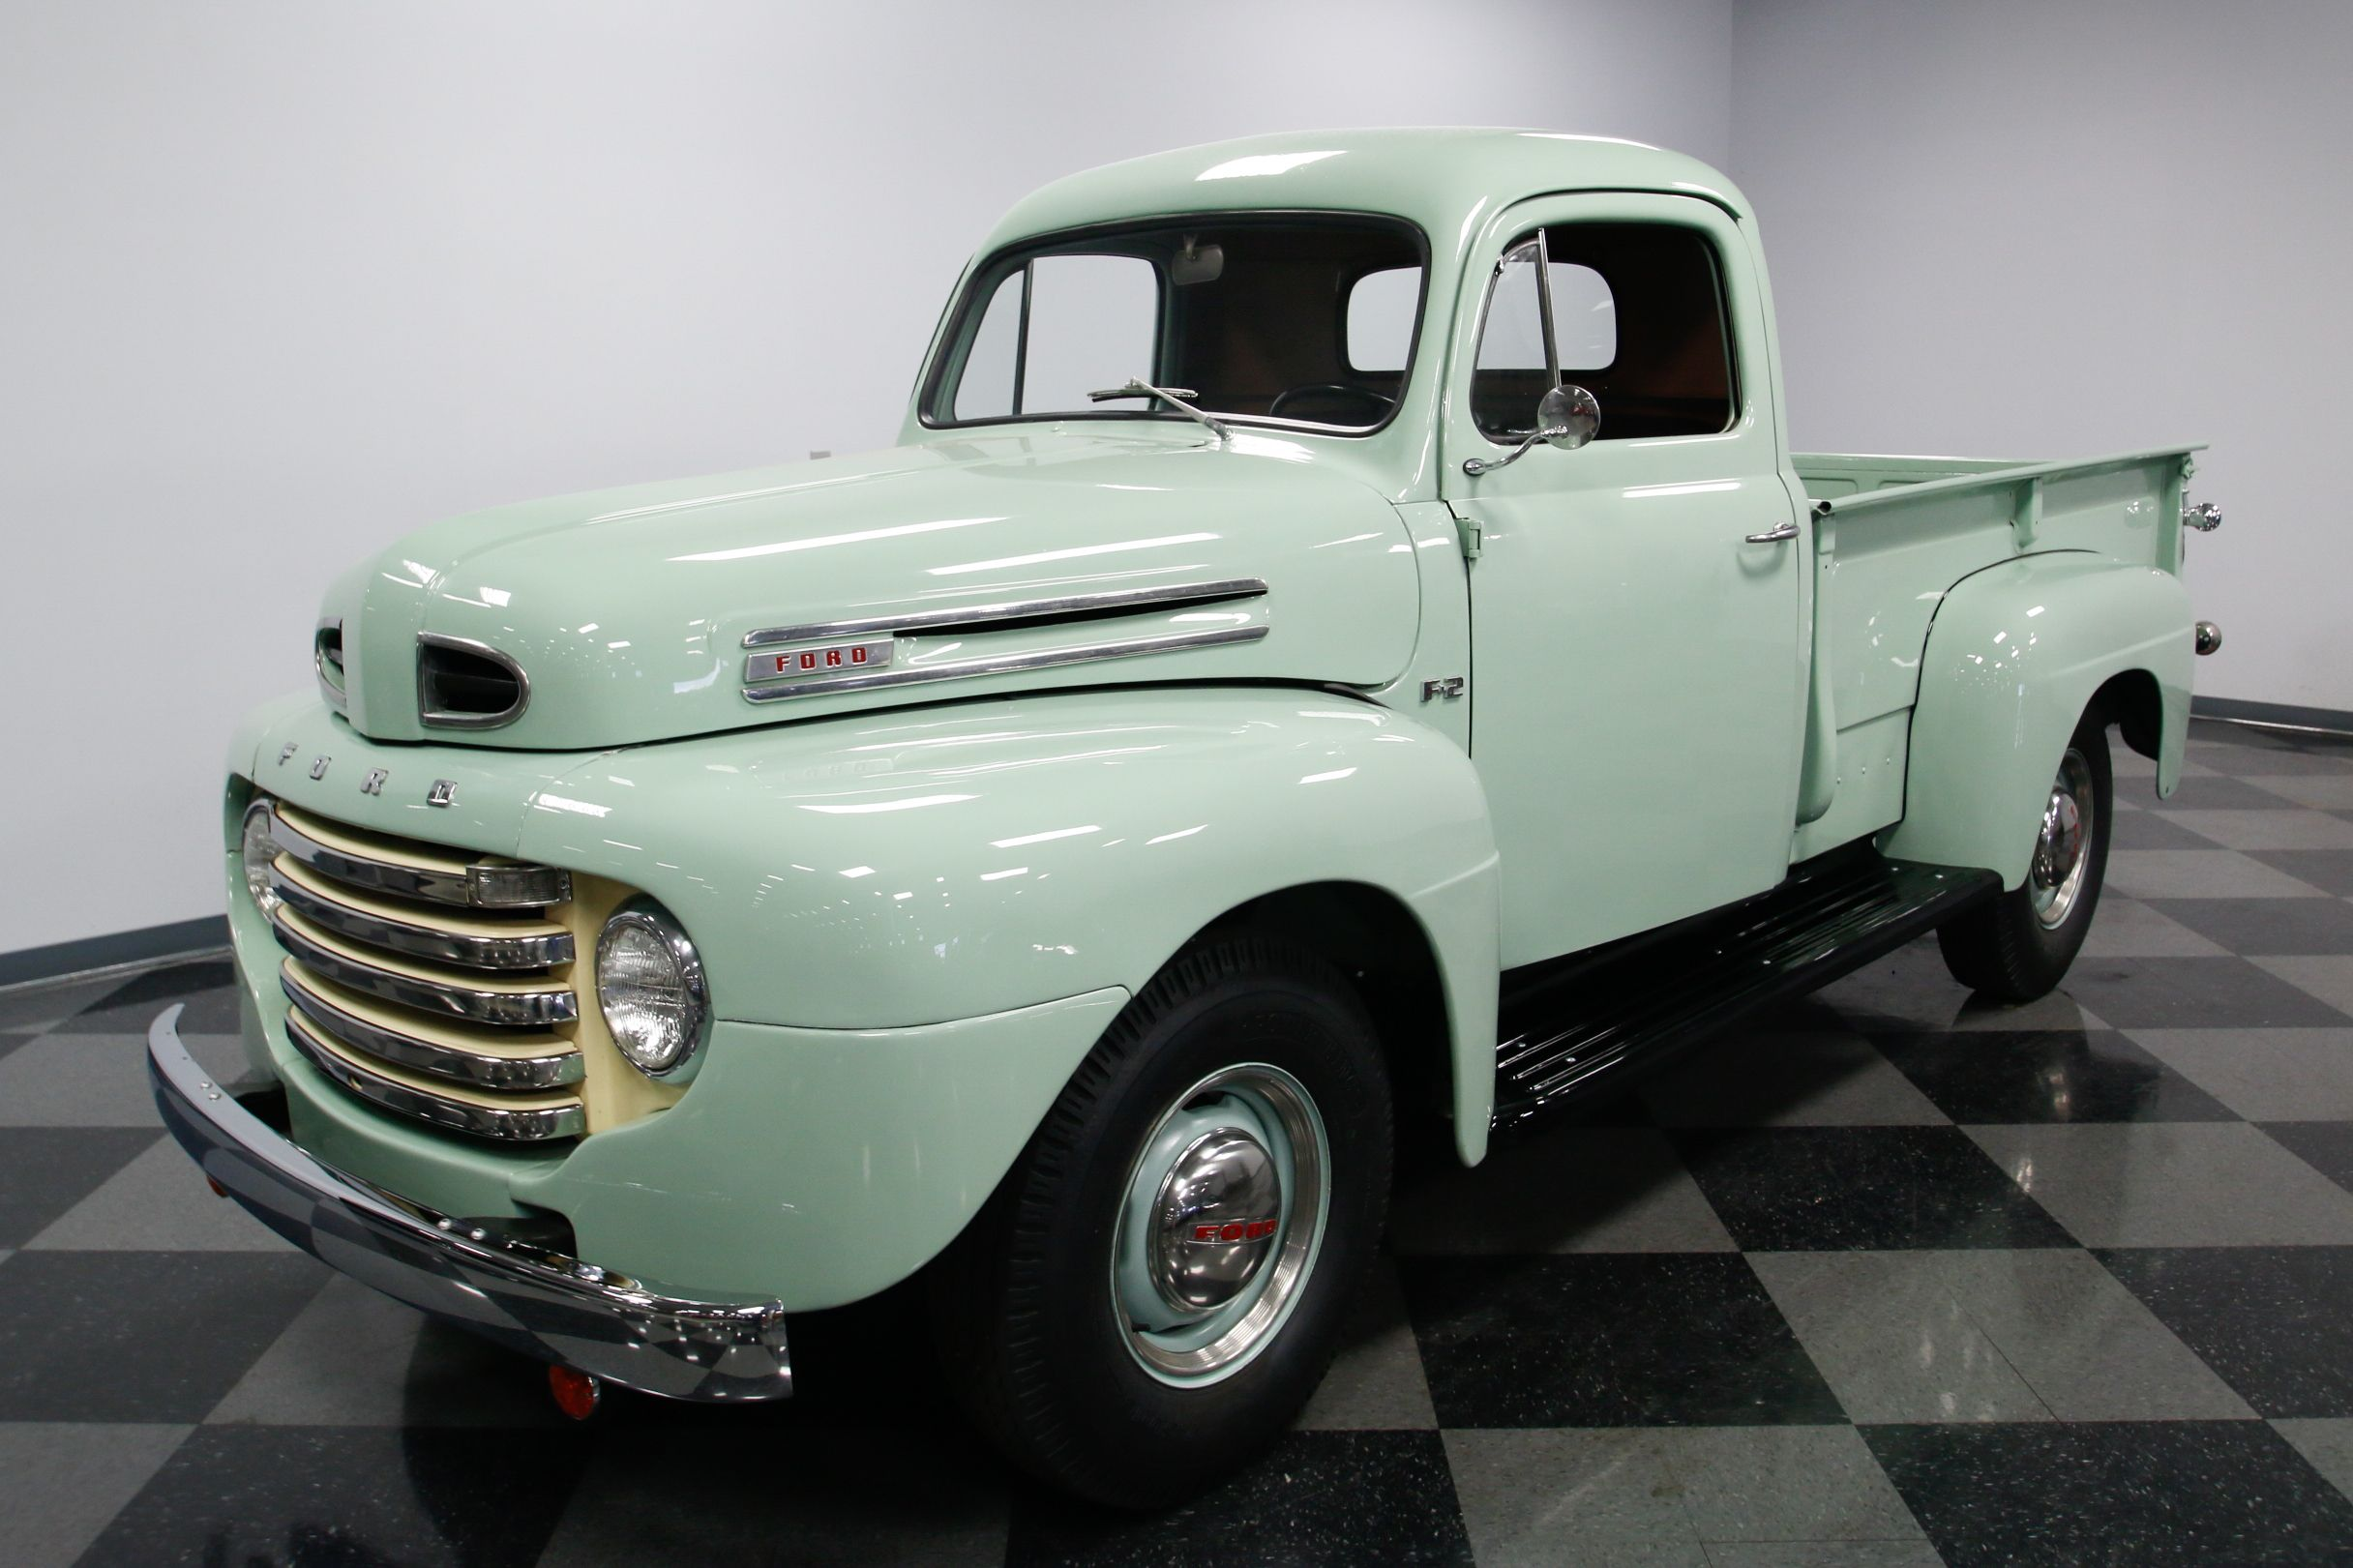 Mint Condition 1948 Ford Pickups Restored 1948 Ford Pickup Ford Classic Cars Classic Cars